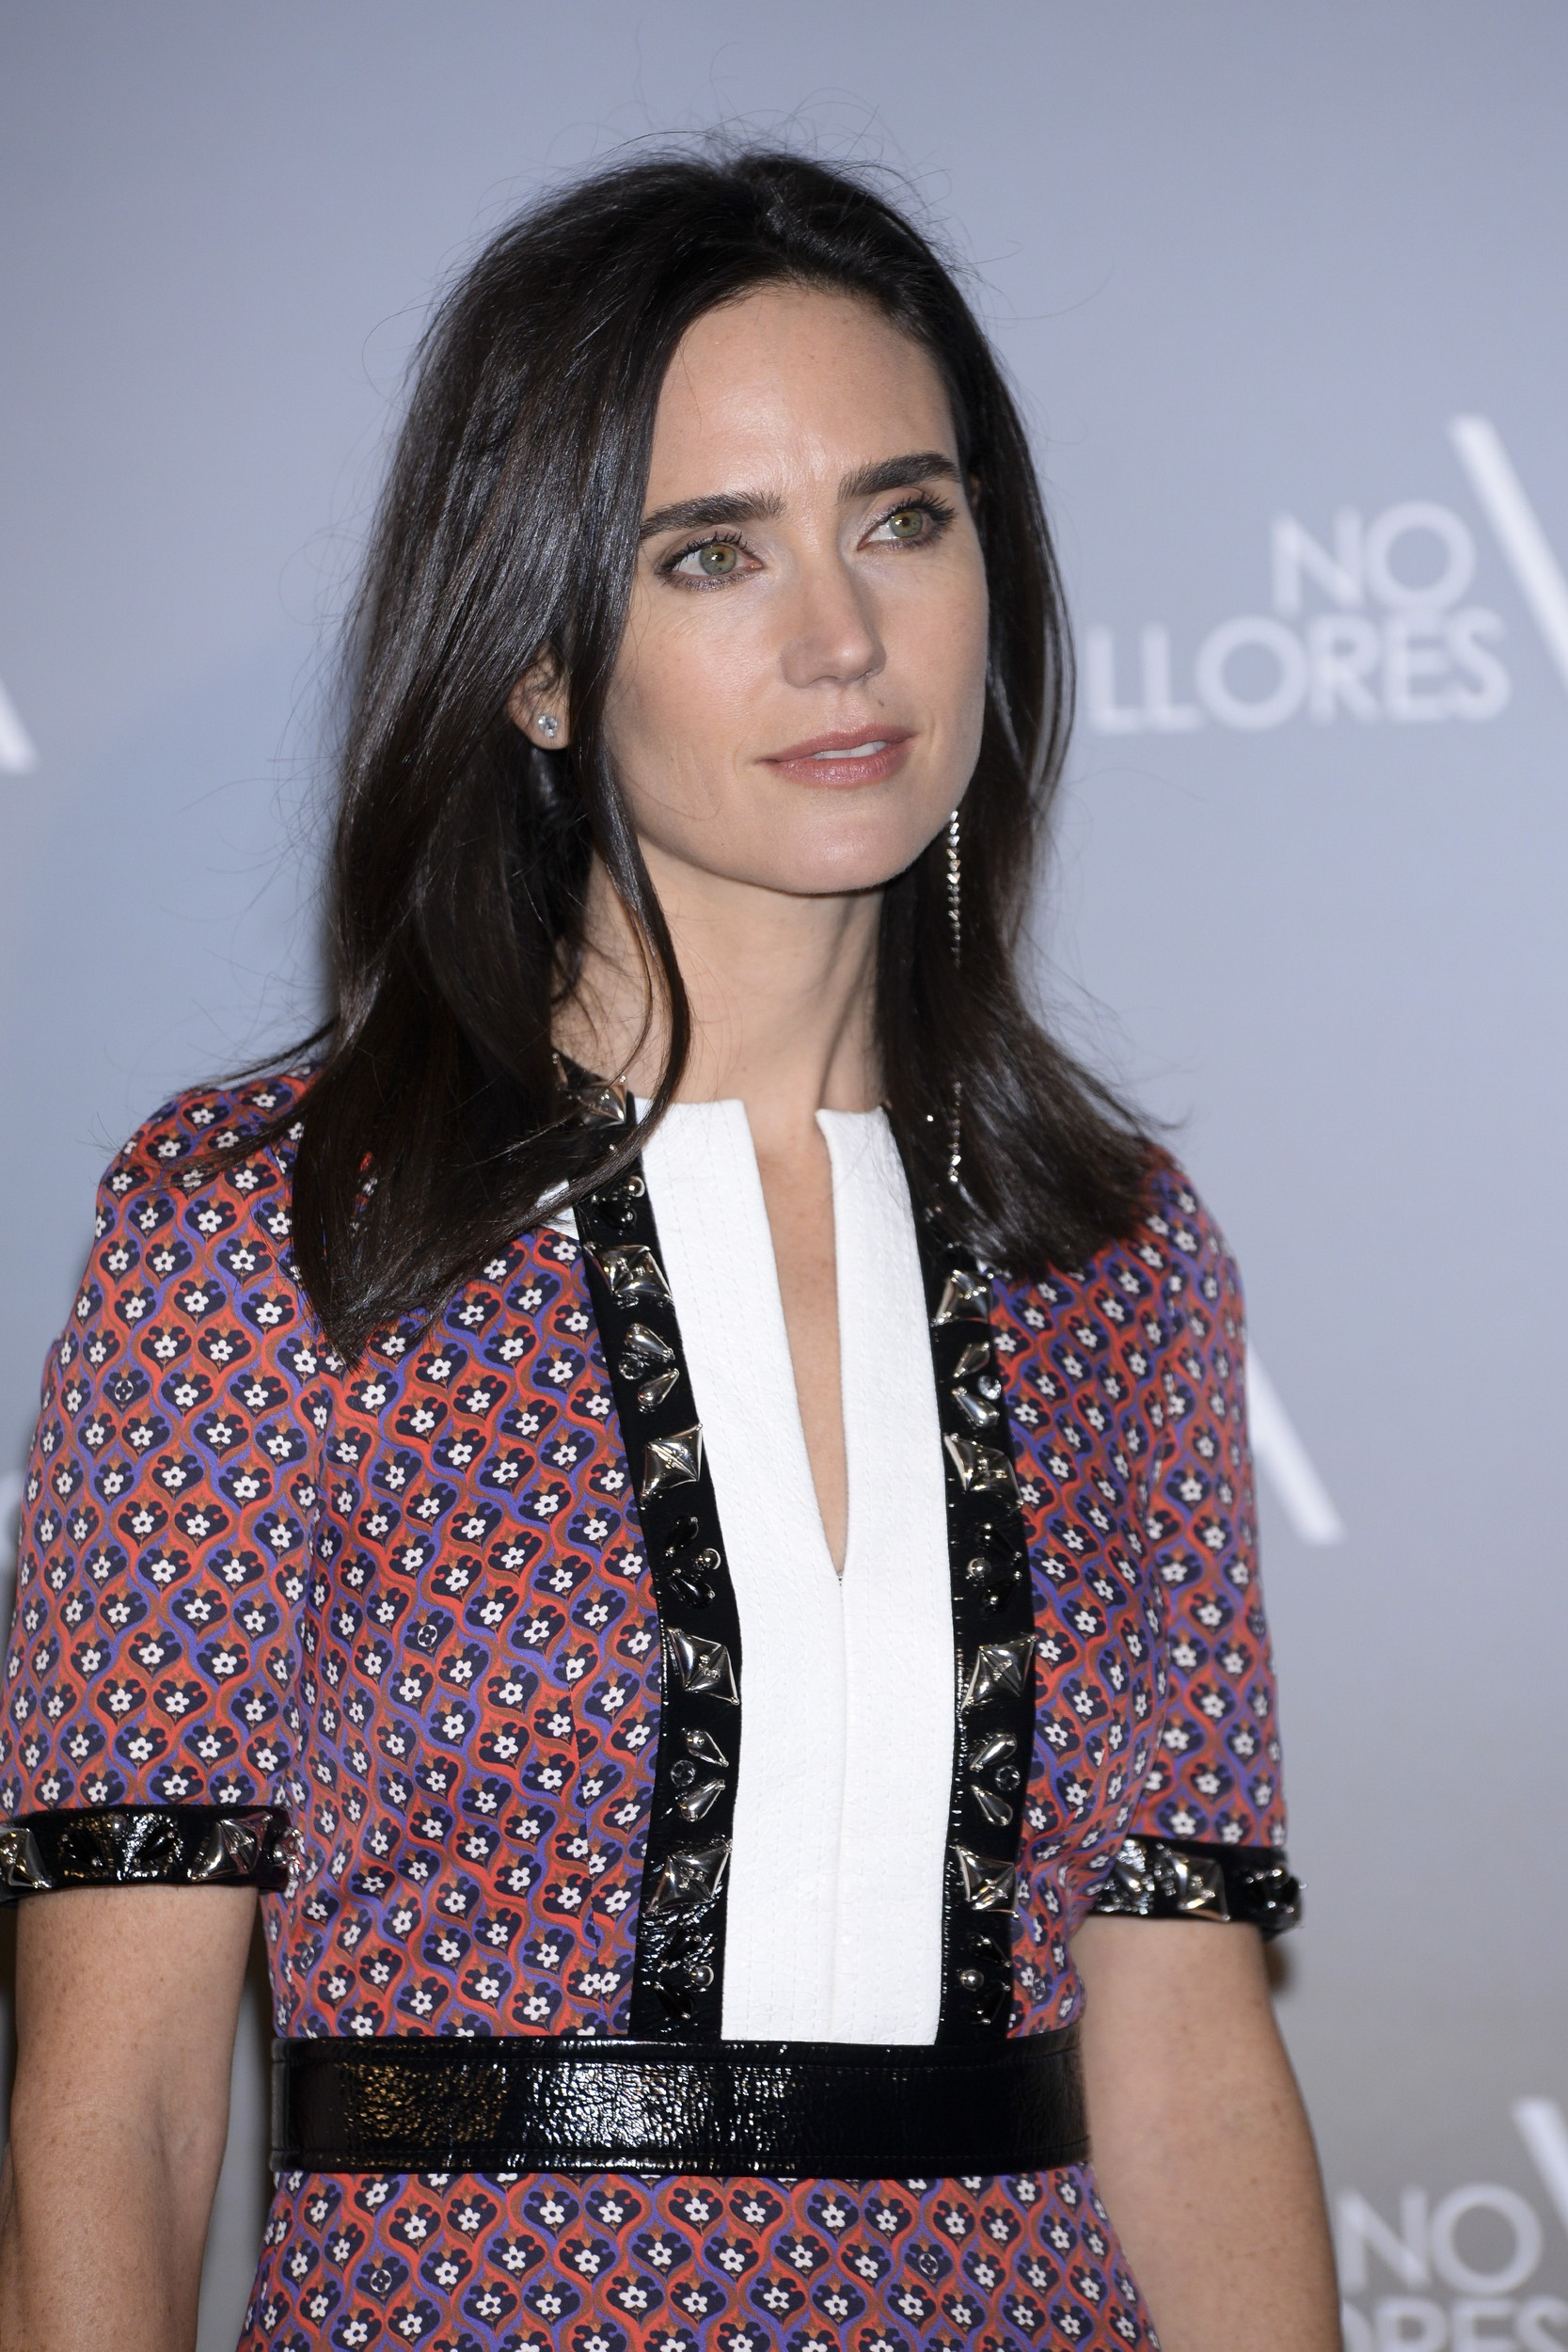 Jennifer connelly supergirl, sexy hot nude goth babes sex